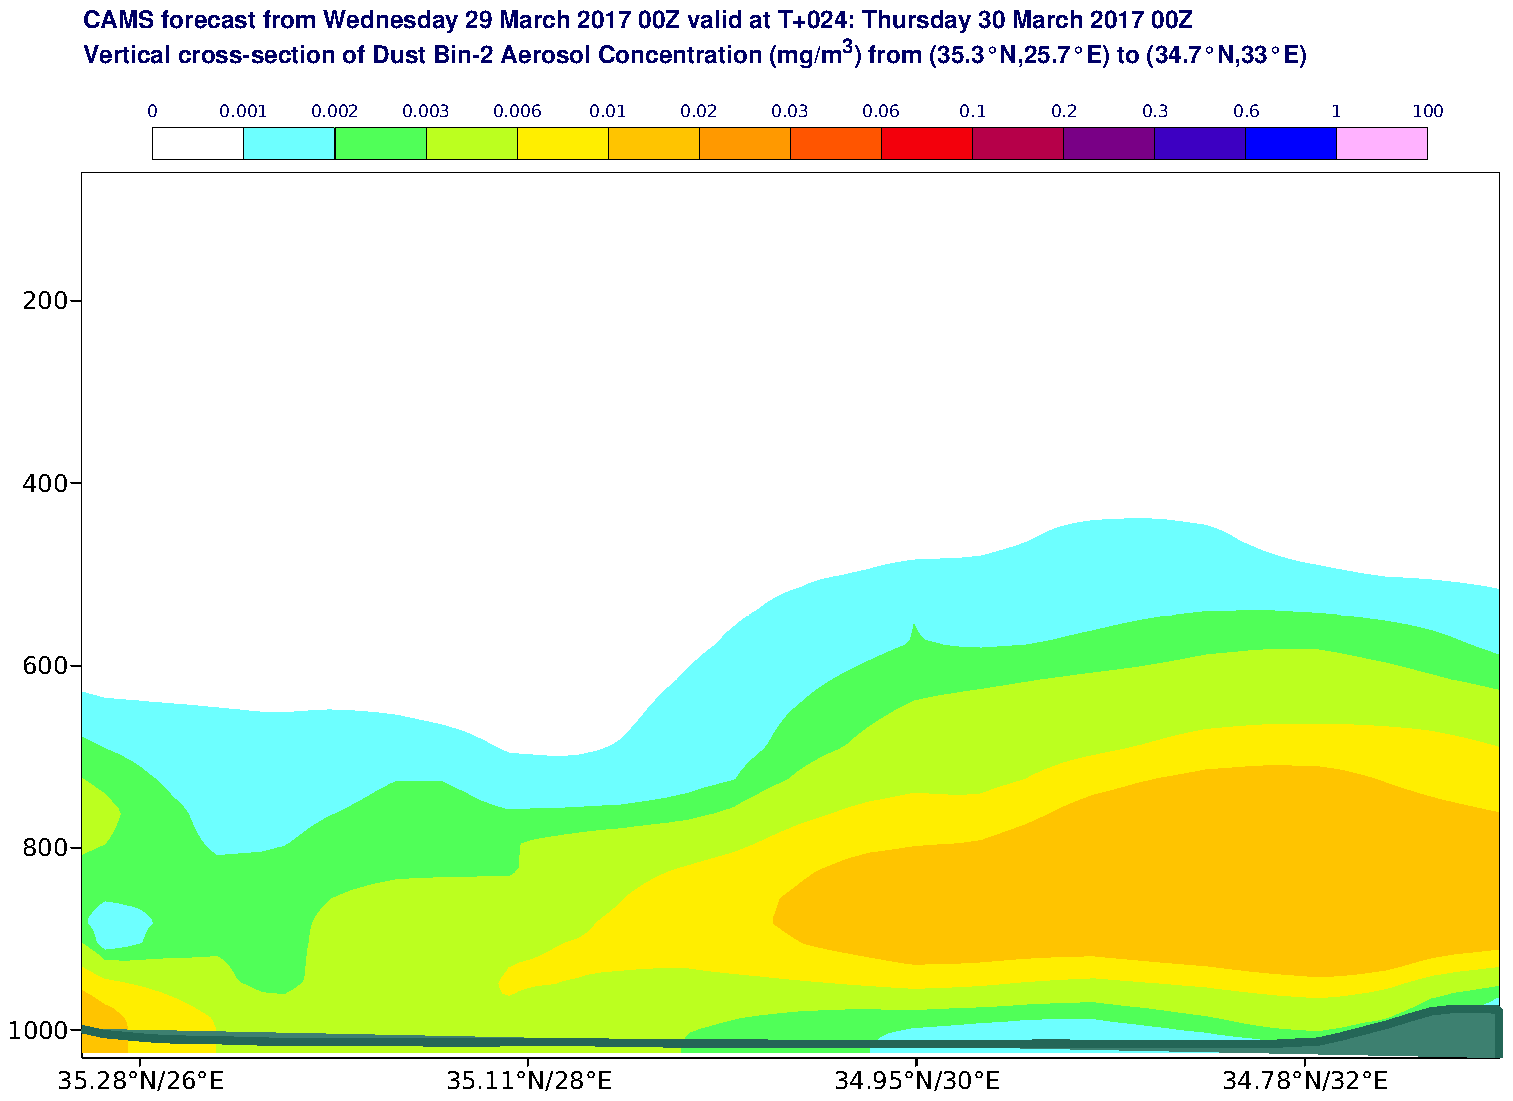 Vertical cross-section of Dust Bin-2 Aerosol Concentration (mg/m3) valid at T24 - 2017-03-30 00:00